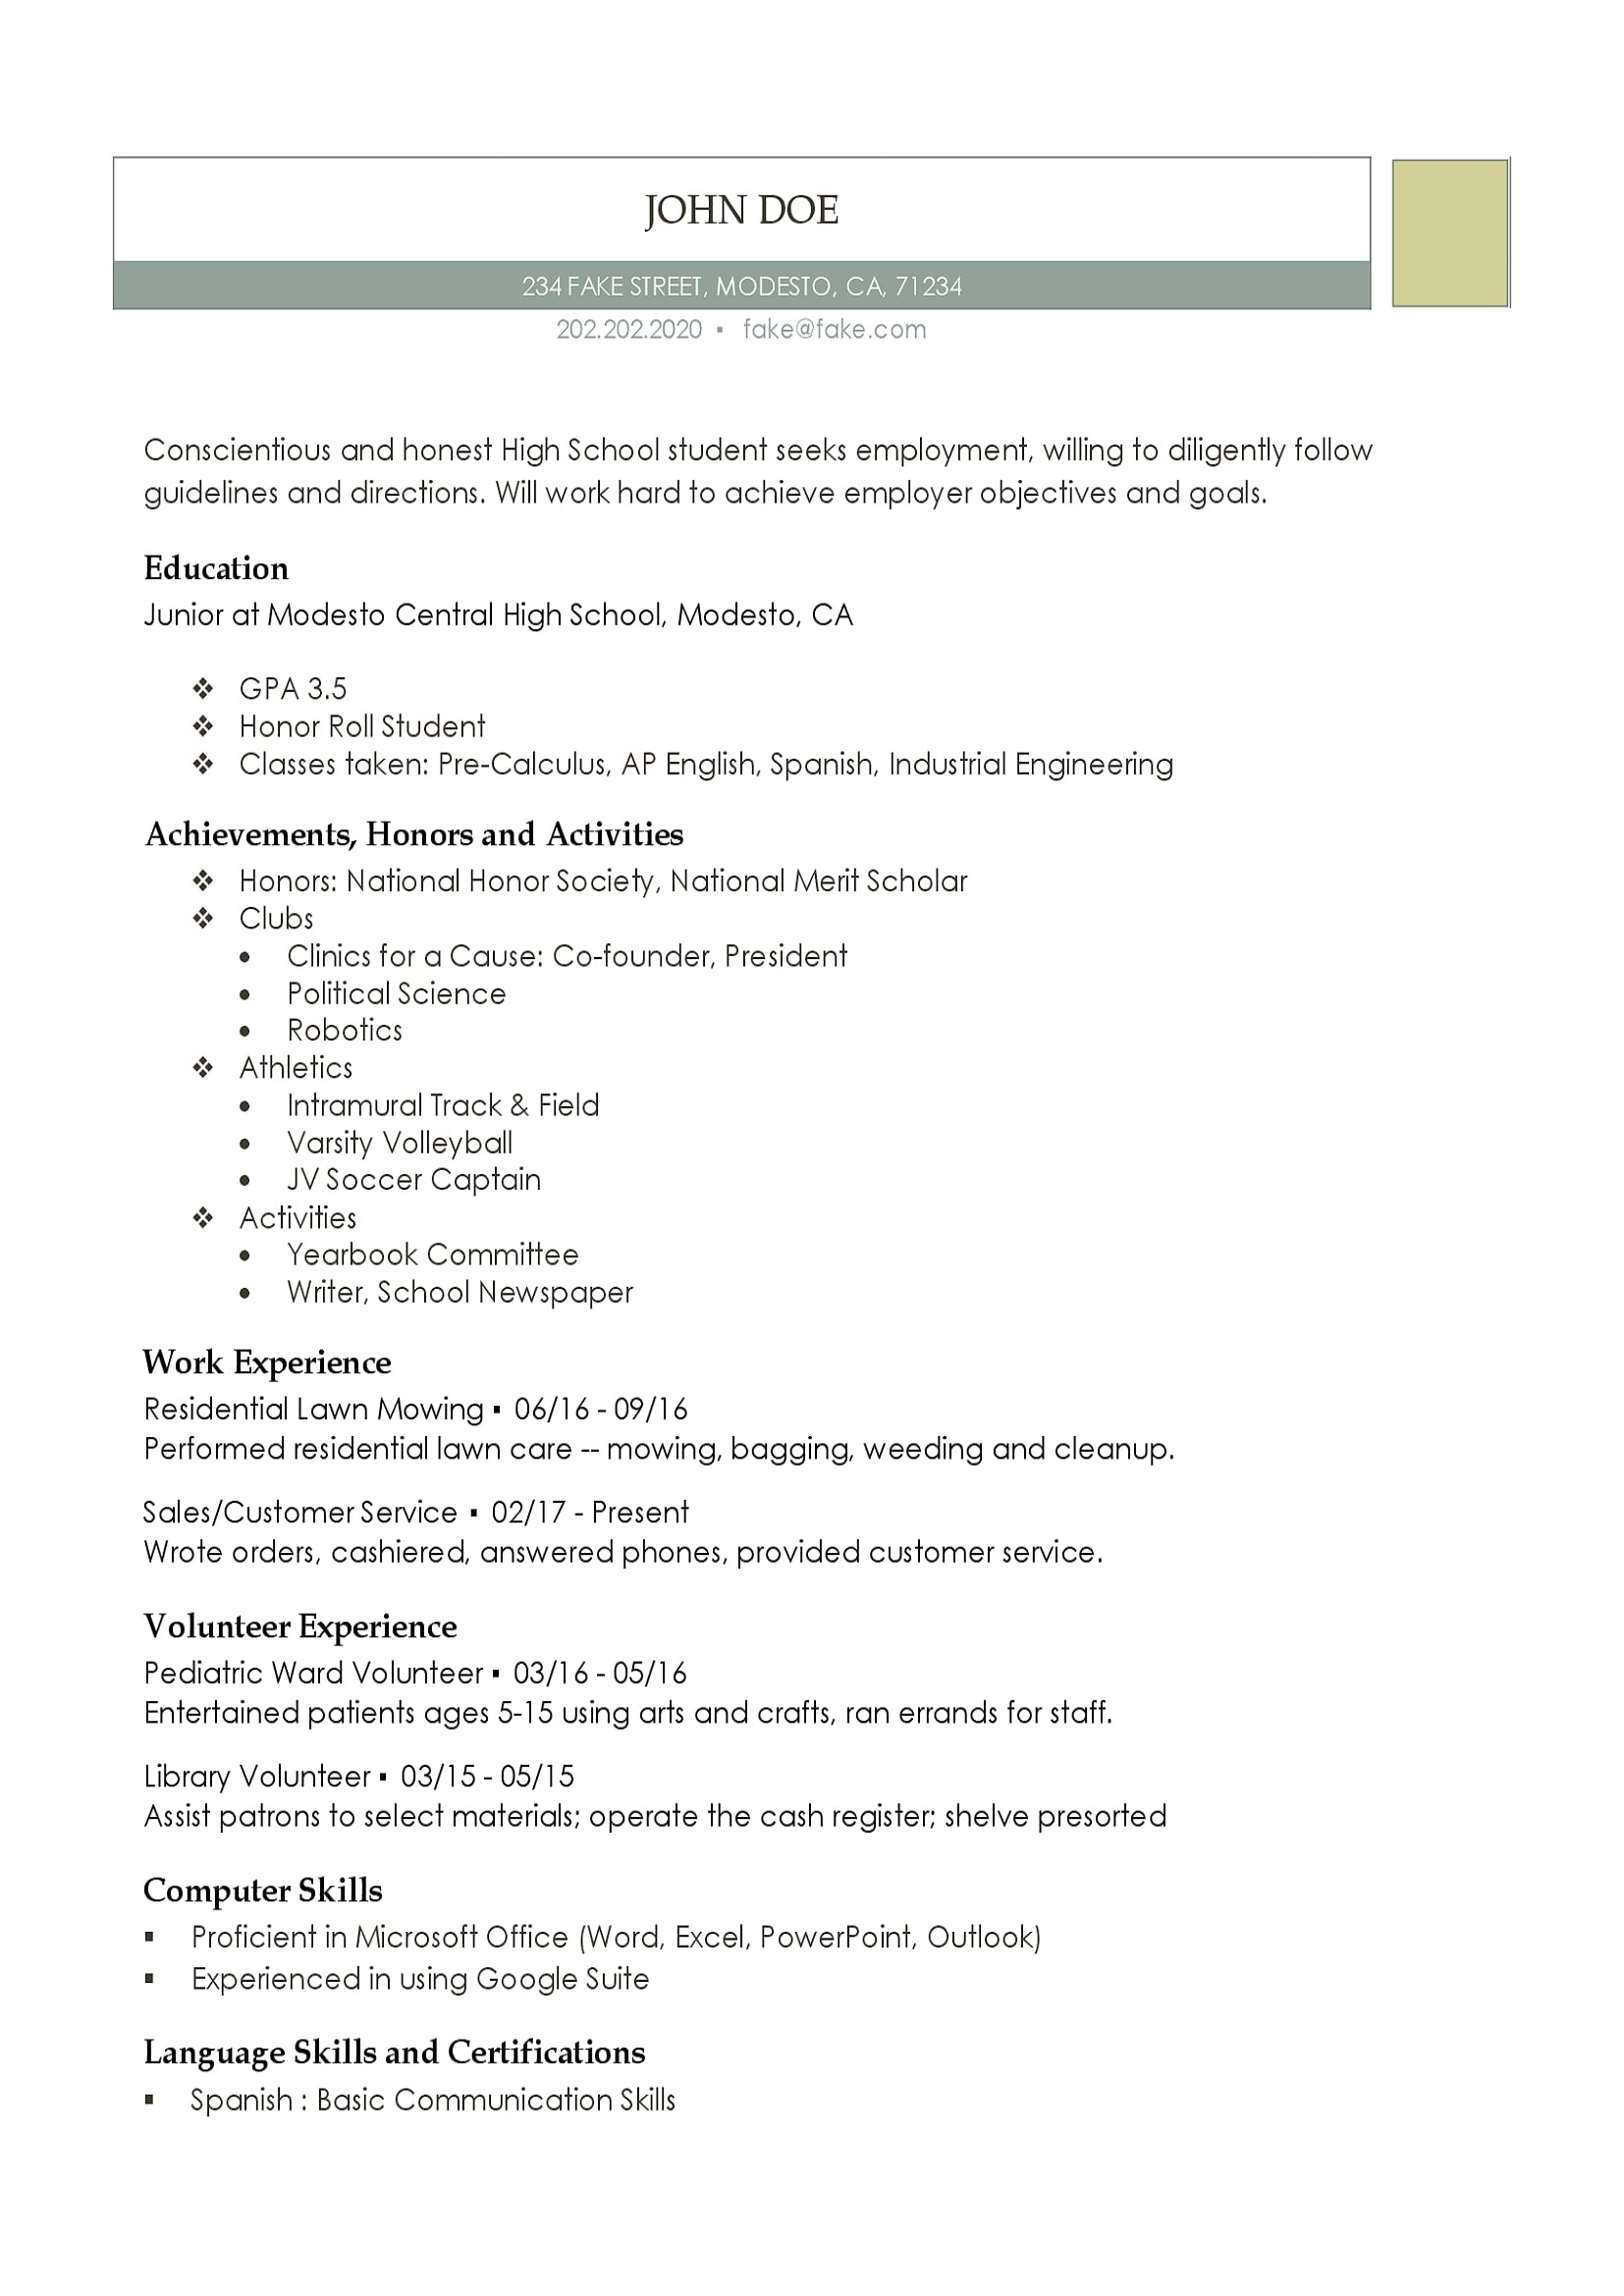 high school resume templates for students and teens help free premade document imaging Resume Resume Help For High School Students